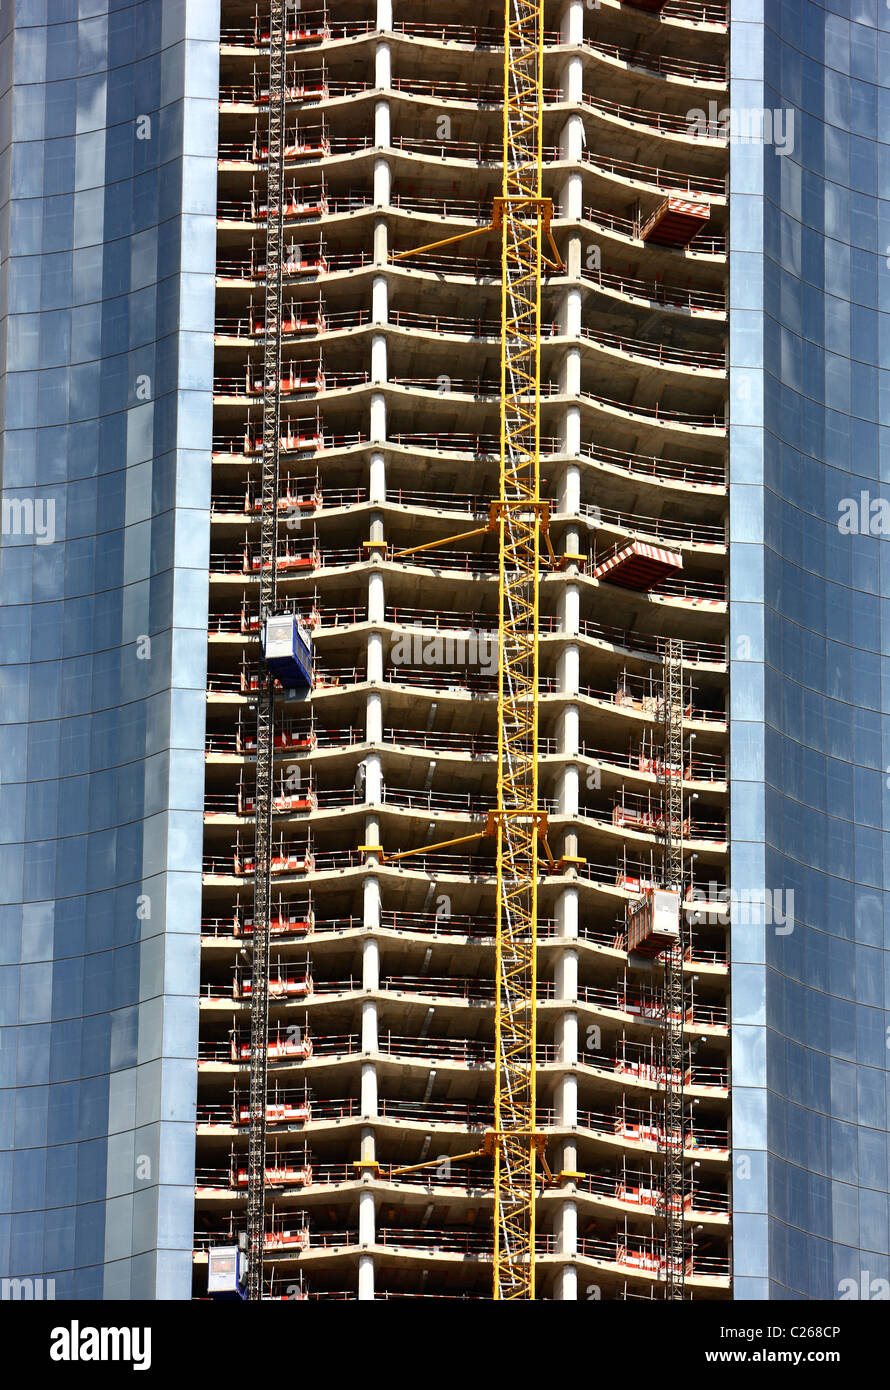 Construction site of new skyscrapers in the city center of Abu Dhabi, United Arab Emirates. - Stock Image